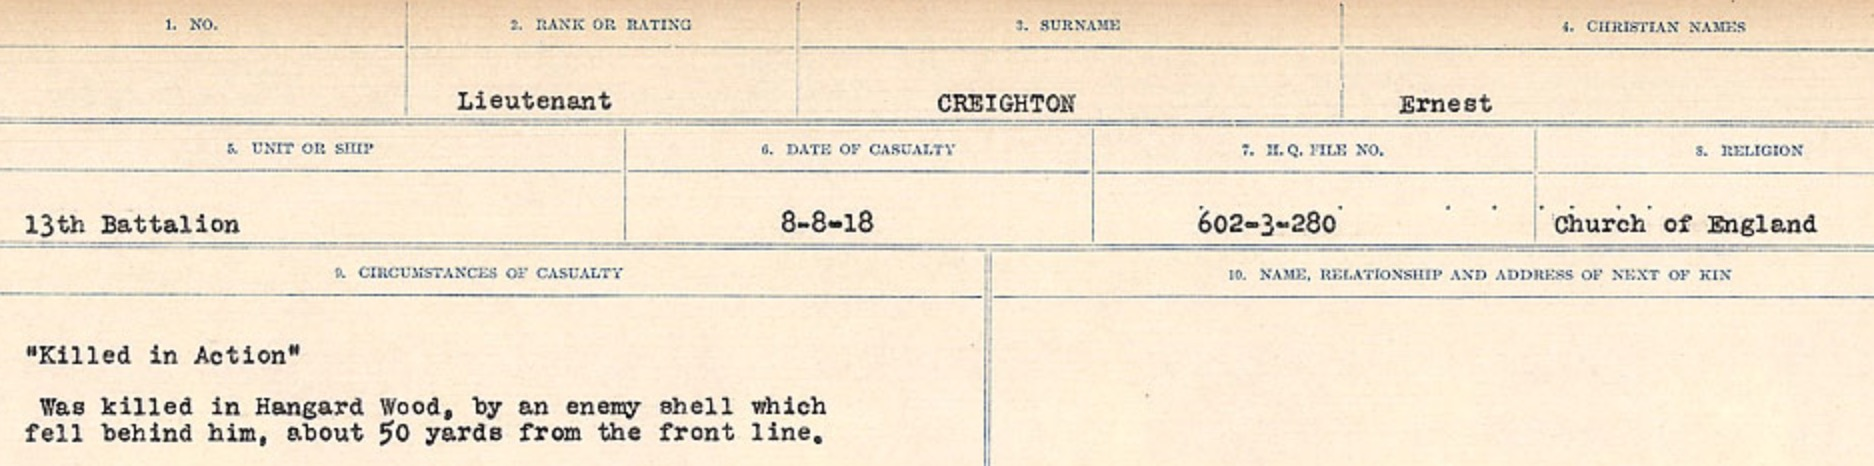 Circumstances of death registers– Source: Library and Archives Canada. CIRCUMSTANCES OF DEATH REGISTERS, FIRST WORLD WAR Surnames: CRABB TO CROSSLAND Microform Sequence 24; Volume Number 31829_B016733. Reference RG150, 1992-93/314, 168. Page 451 of 788.